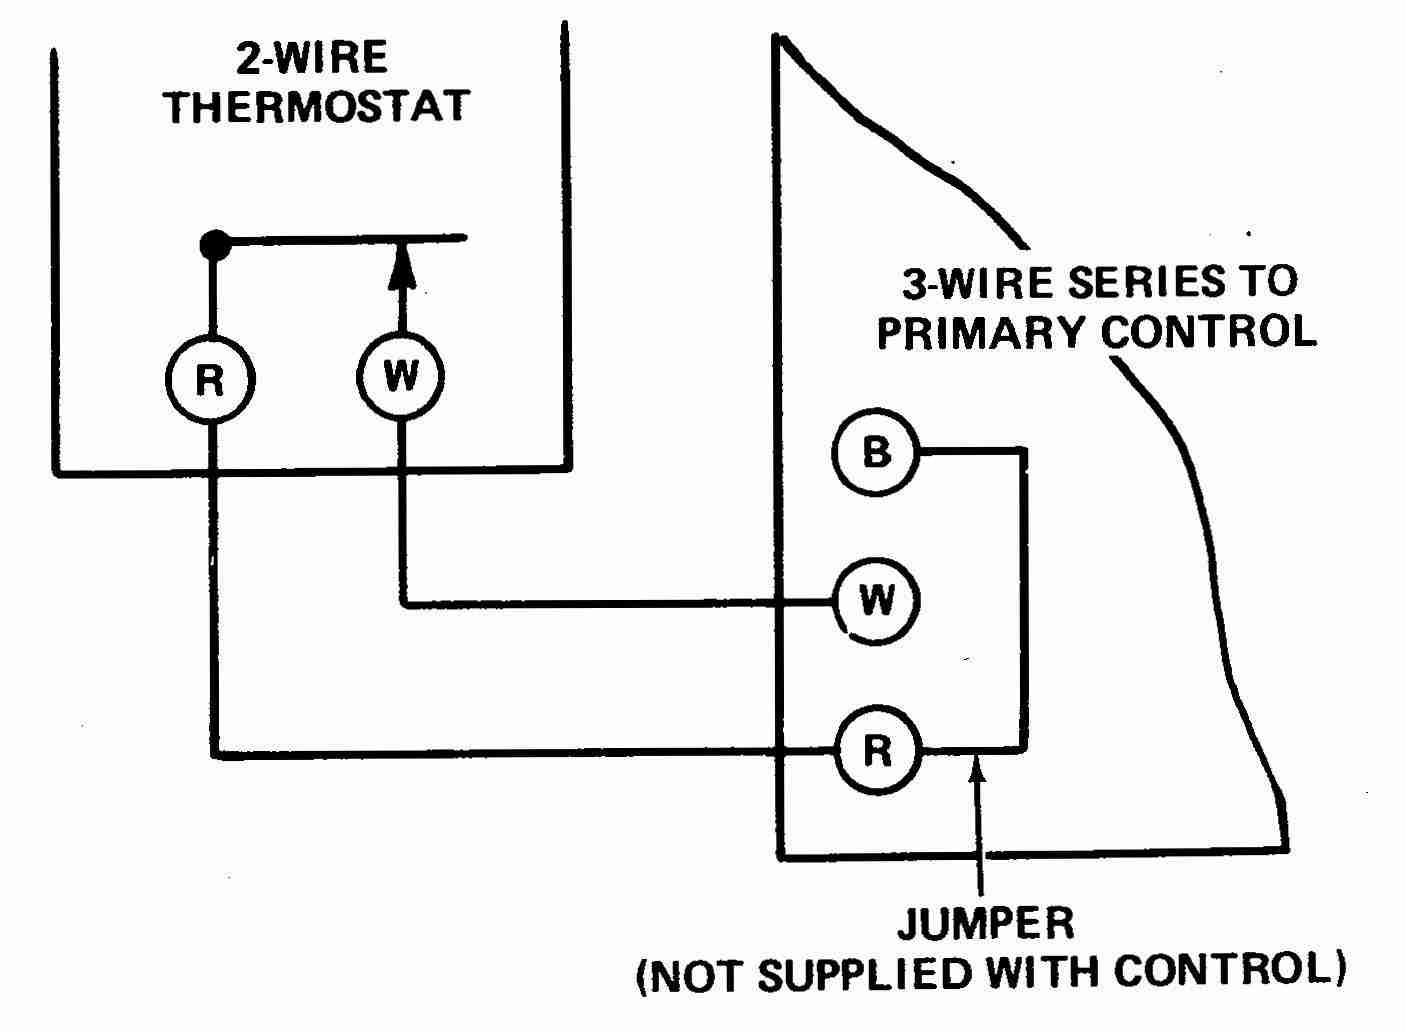 4 Wire Thermostat Heat Pump Wiring Diagrams - Wiring Diagrams Hubs - Honeywell Wiring Diagram